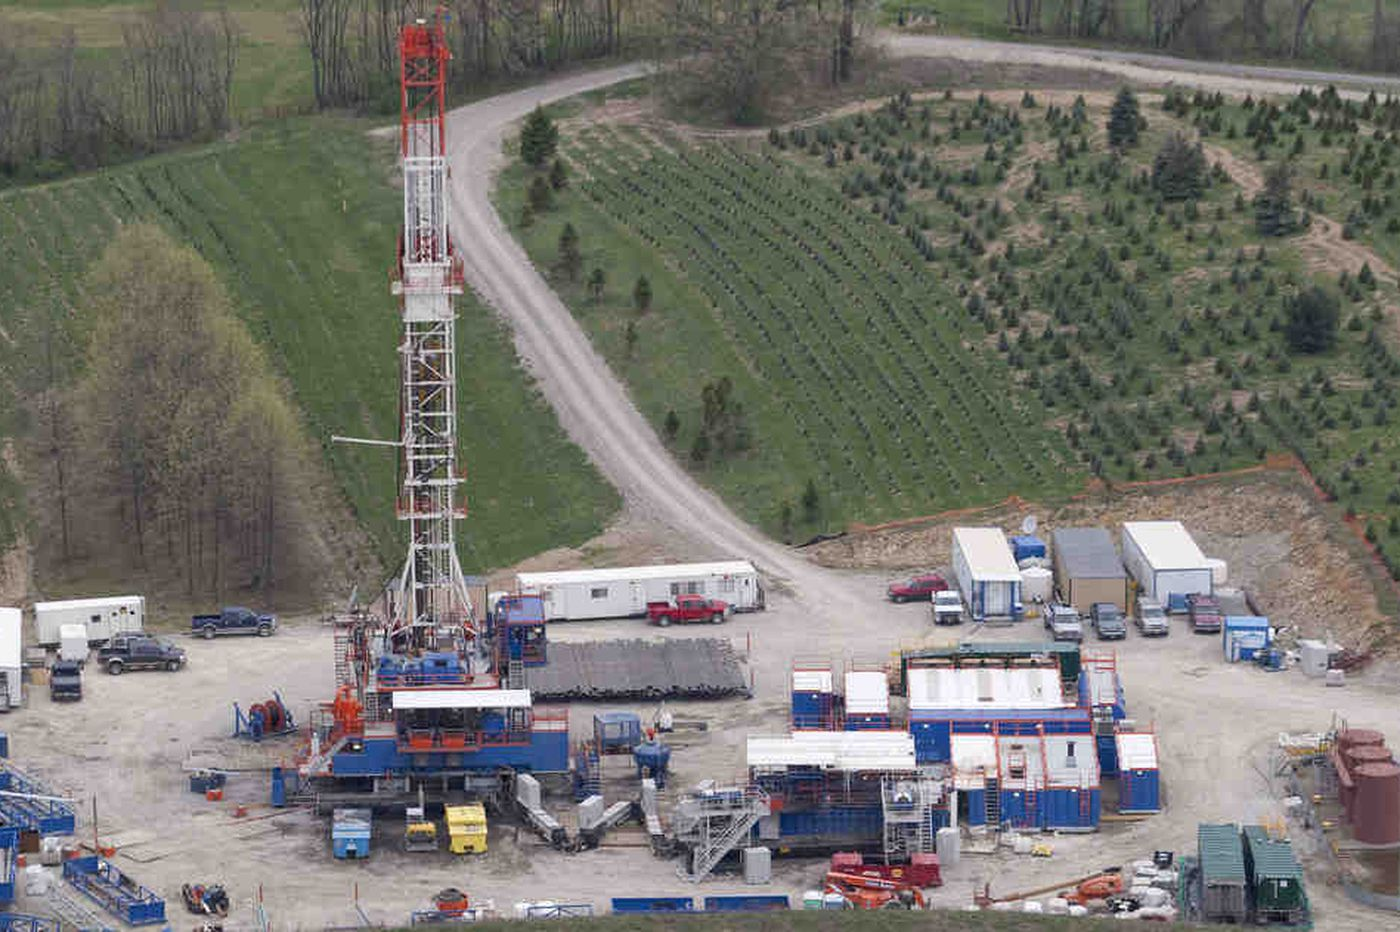 Out West, campus gas wells not new